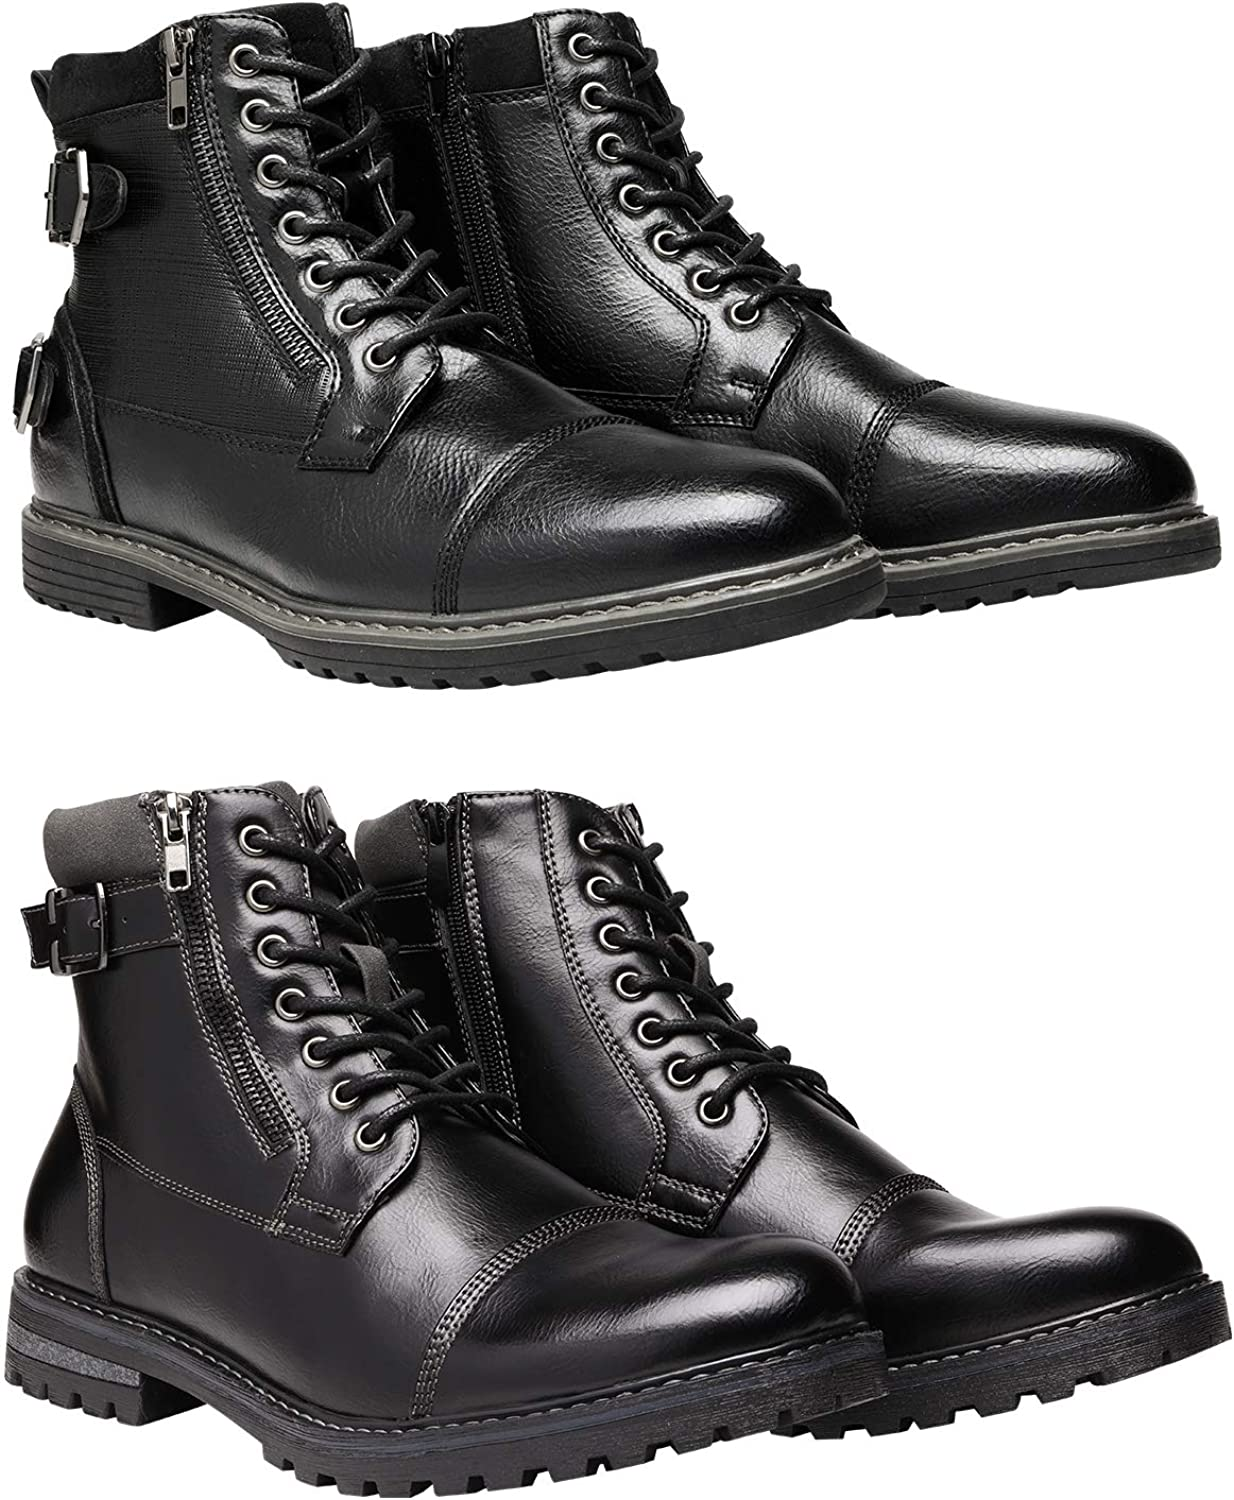 Bruno Marc Men's Motorcycle Boots Bundle with Men's Oxford Boots Size 6.5